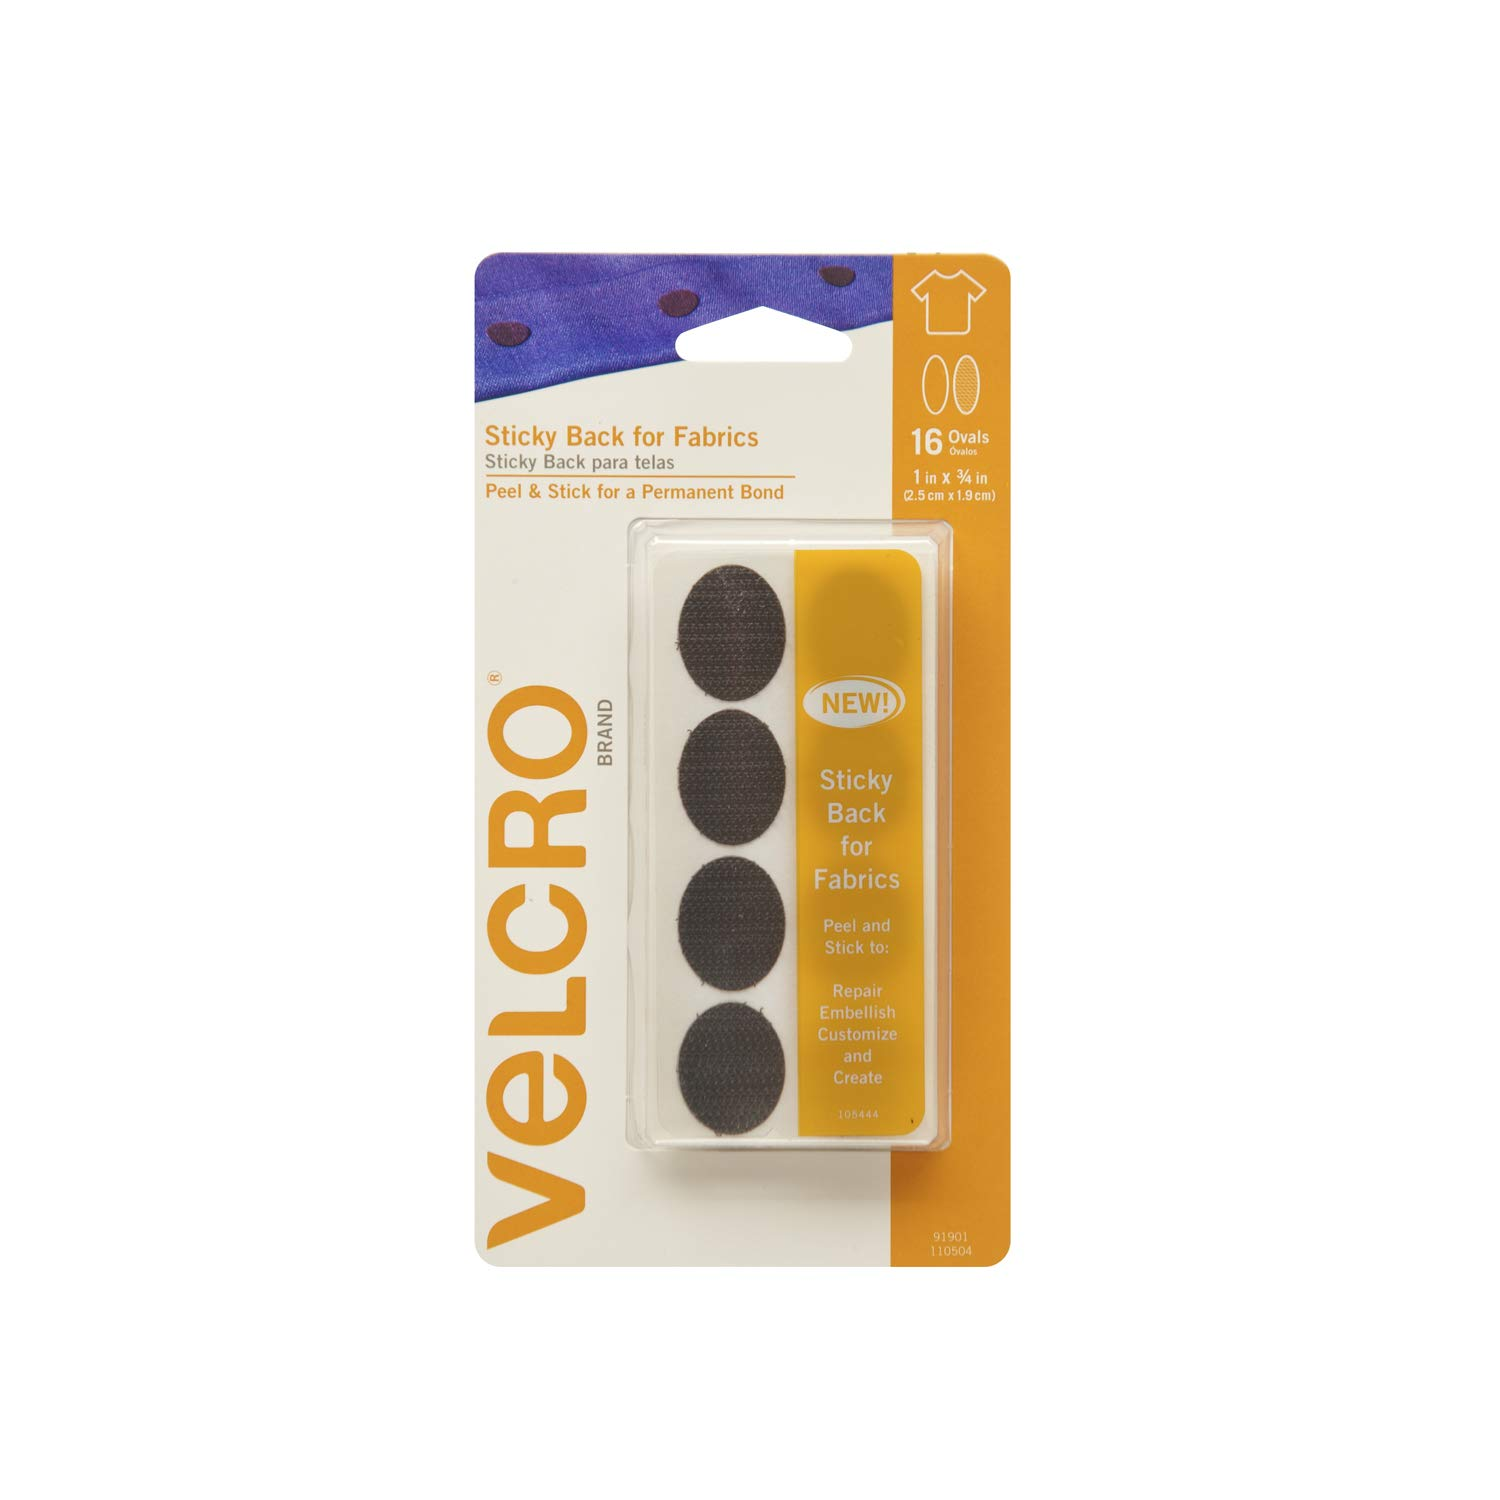 VELCRO Brand-Sticky Back for Fabrics: No Sewing Needed-24-Inch X 3/4-Inch Tape-White VELCRO® Brand 91872